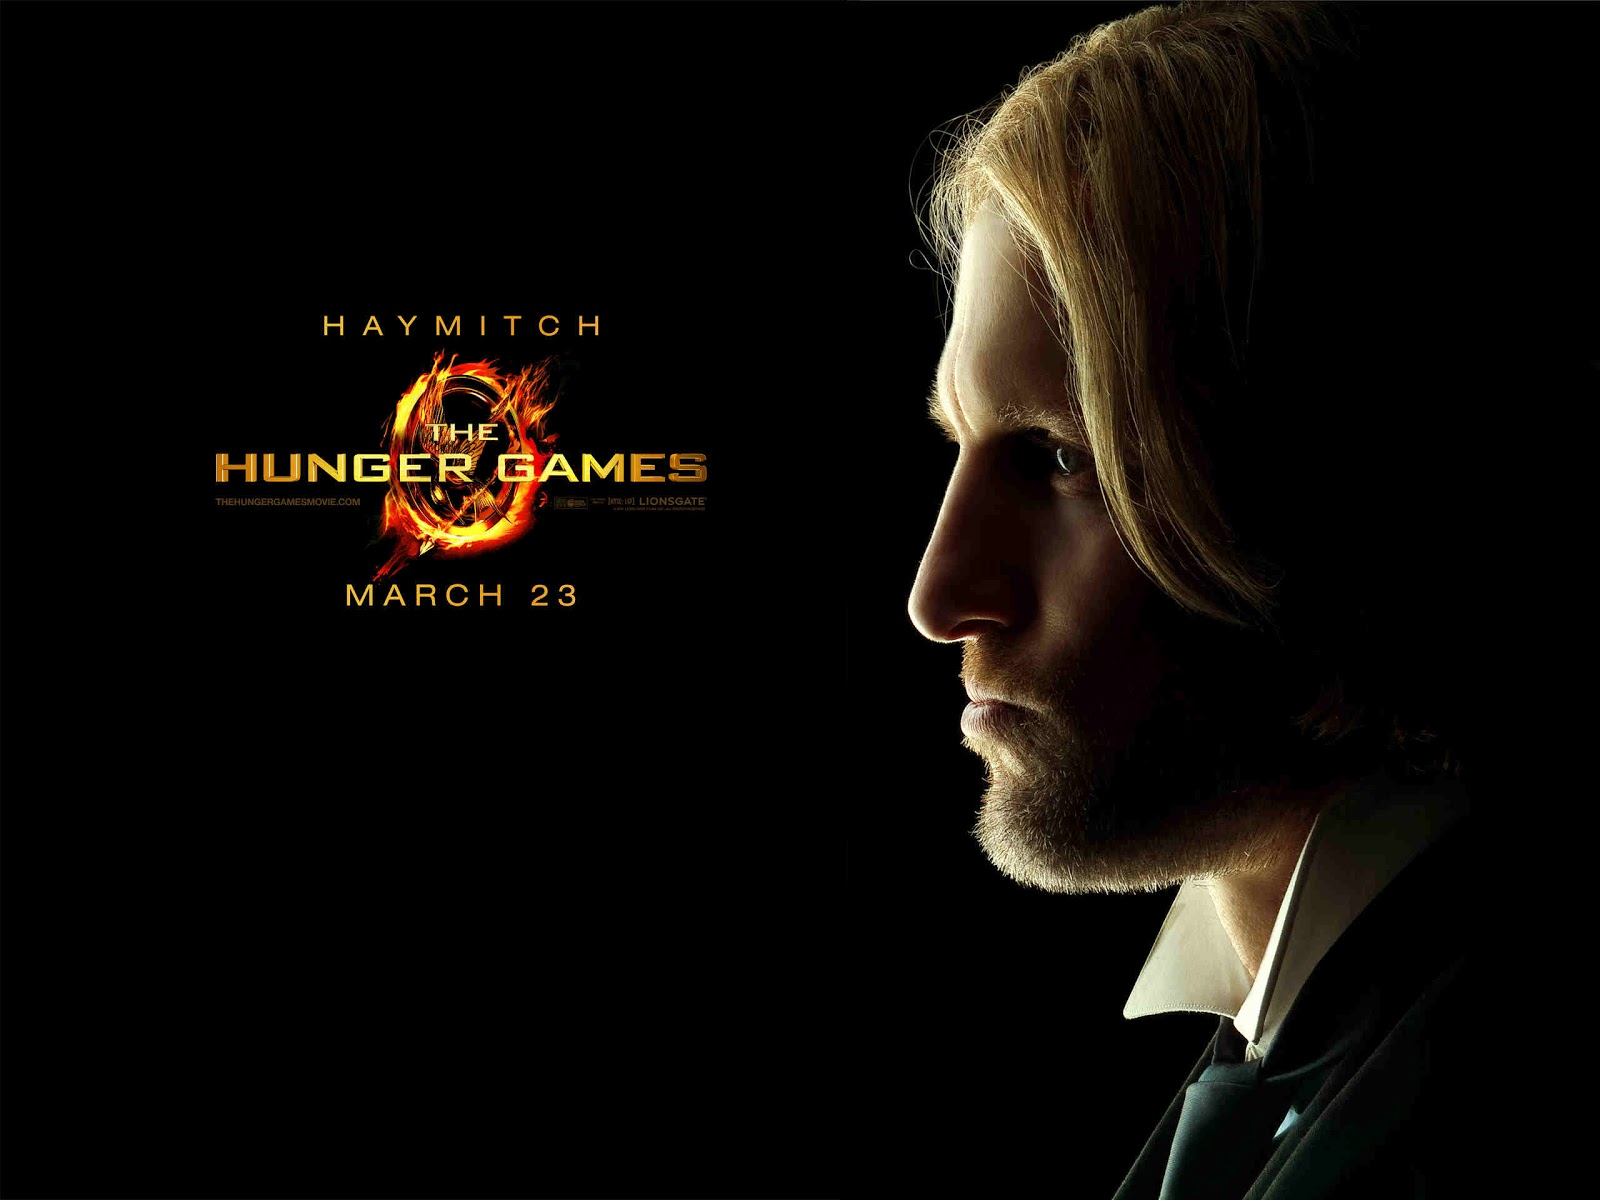 http://4.bp.blogspot.com/-fAqv6u2emec/UHwbNm5TqtI/AAAAAAAAABc/f-Mz6qP9tDY/s1600/The-Hunger-Games-Wallpapers-2560x1920-2.jpg